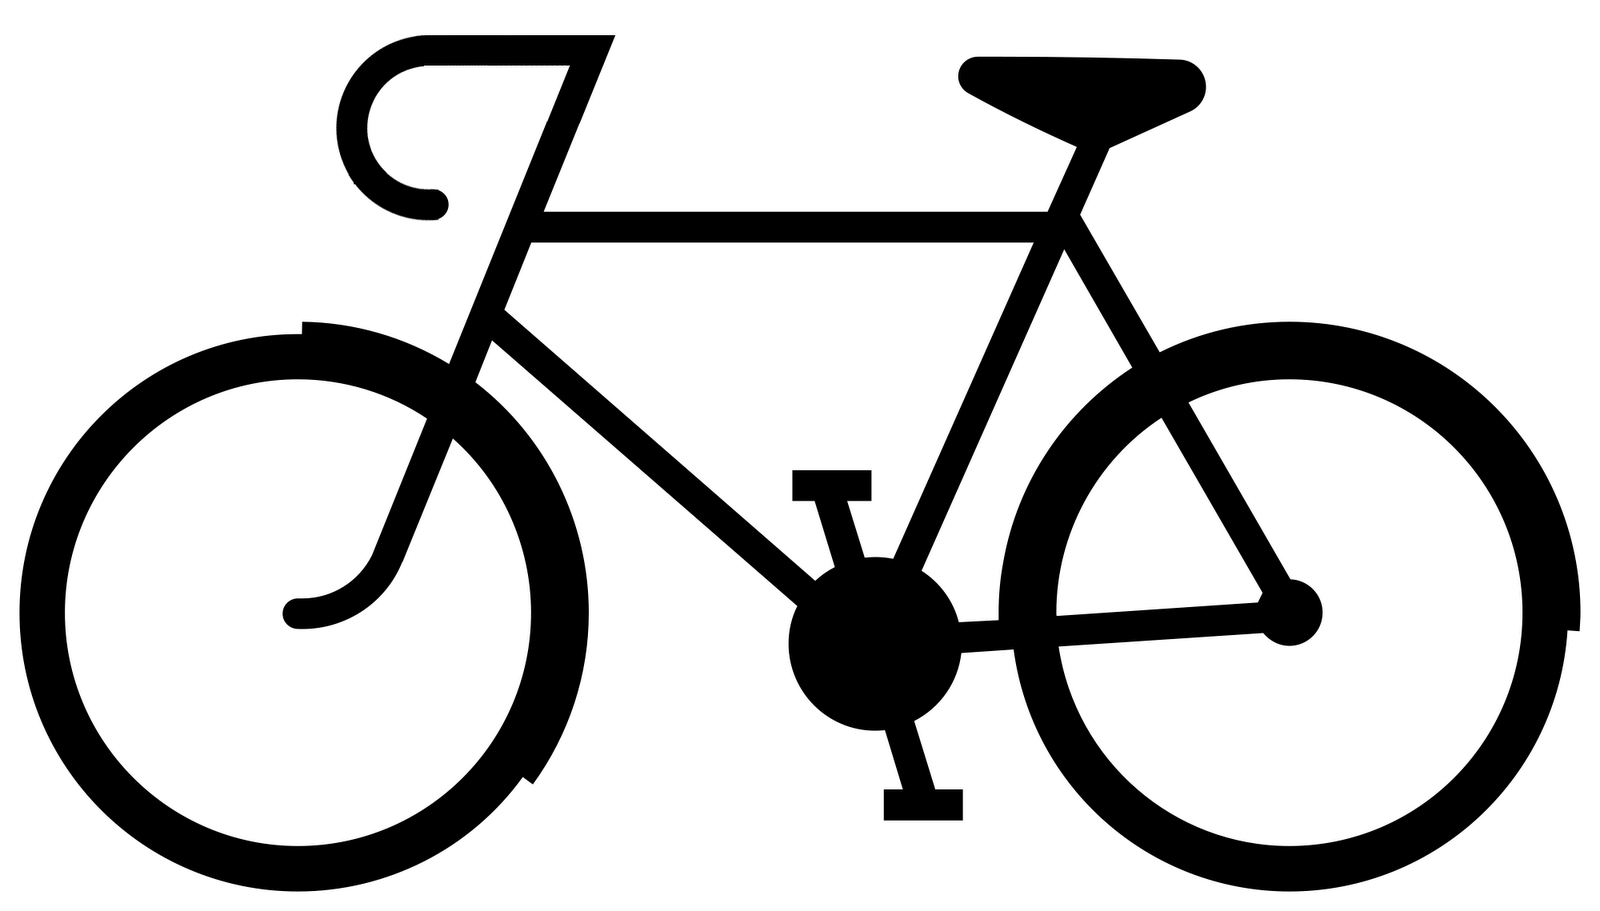 Bike Clipart Black And White | Free download best Bike Clipart ... for Bicycle Clipart Black And White  568zmd